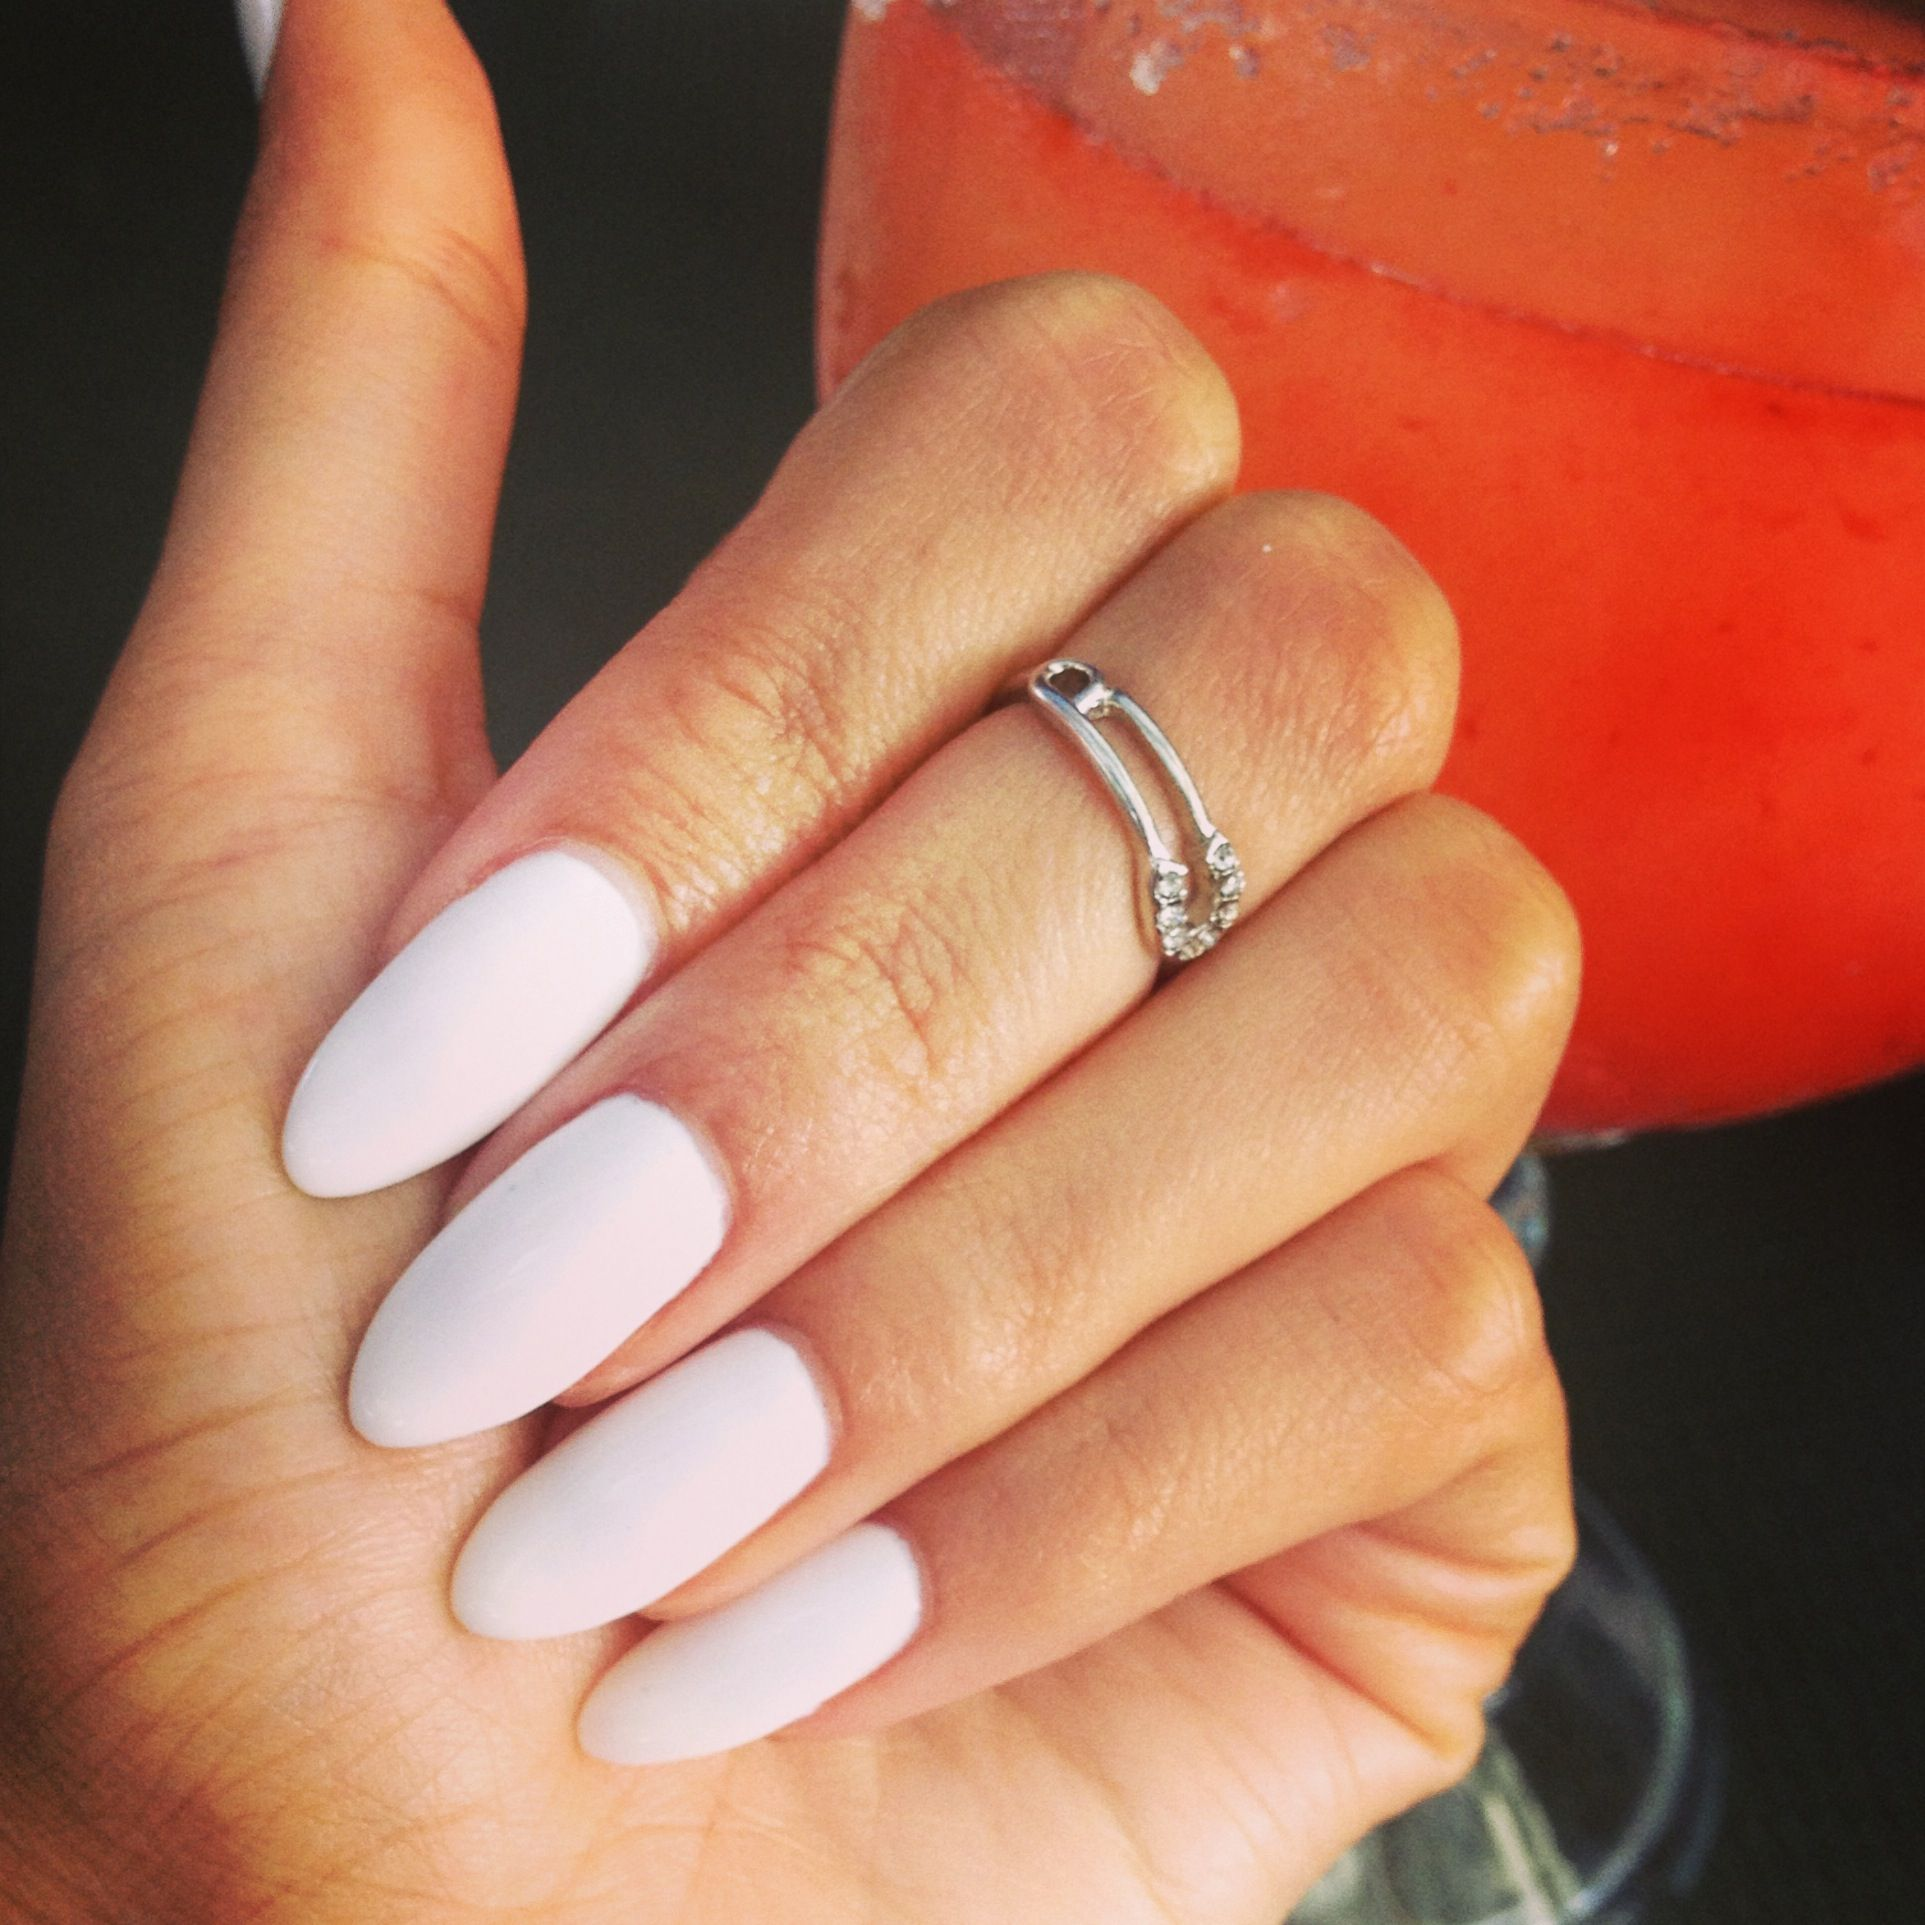 White almond shaped nails | My nails! | Pinterest